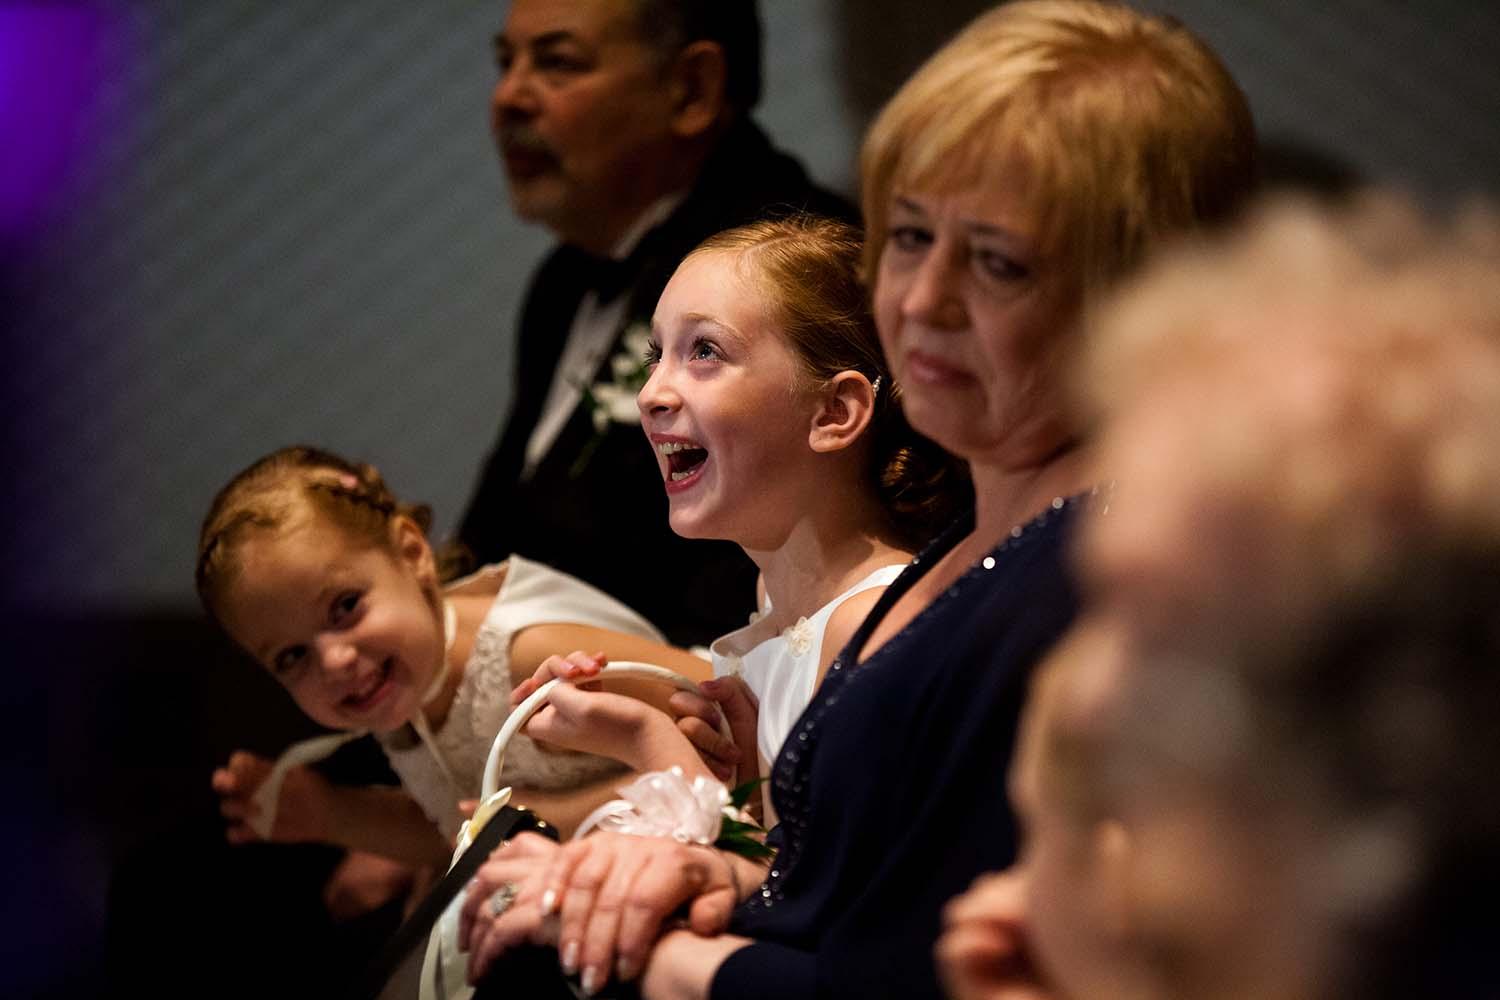 Flower girl laughing during Jewish wedding ceremony